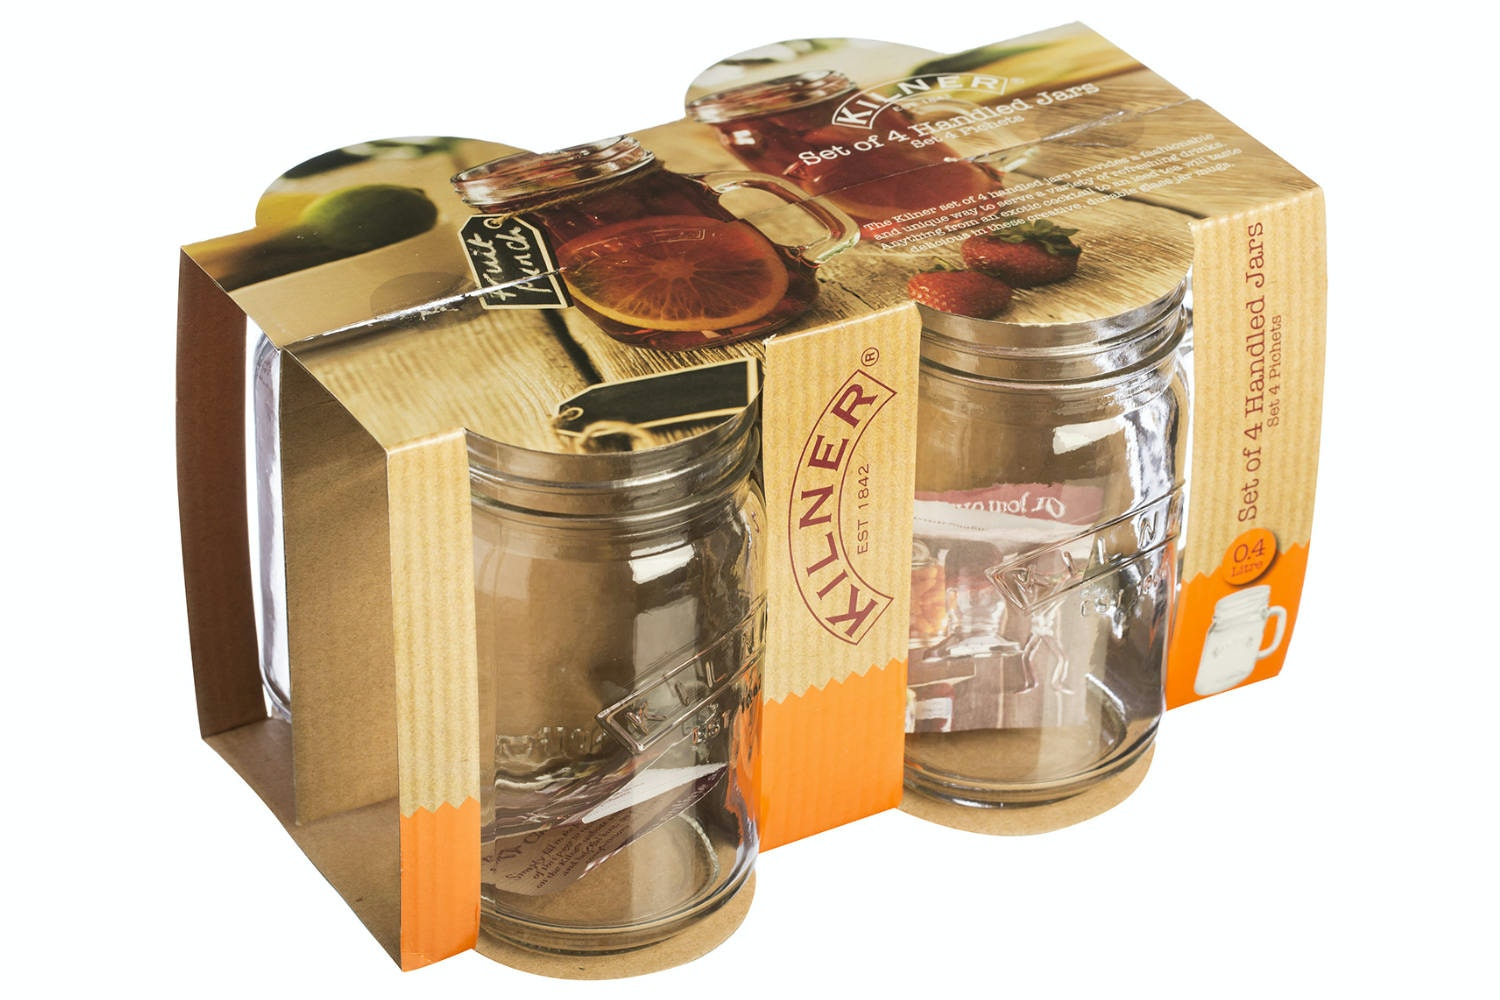 kilner set of 4 handled jars